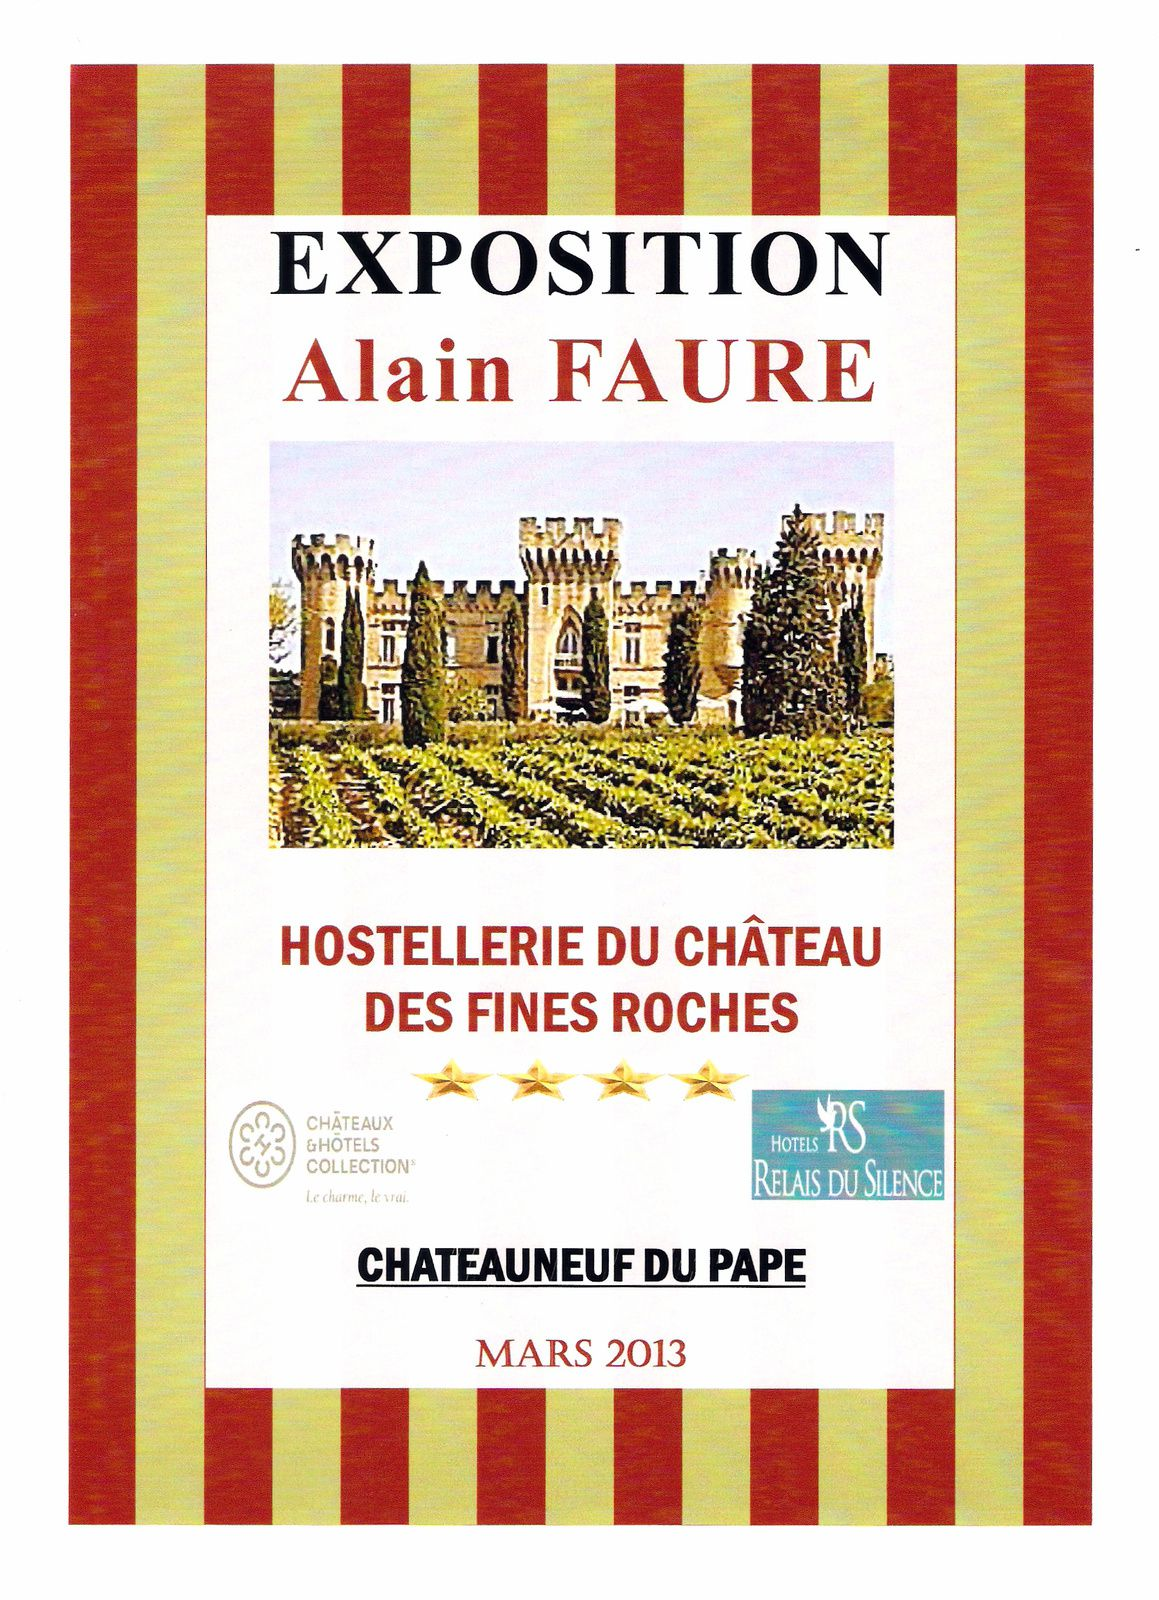 EXPOSITION CHÂTEAUNEUF DU PAPE - FINES ROCHES -